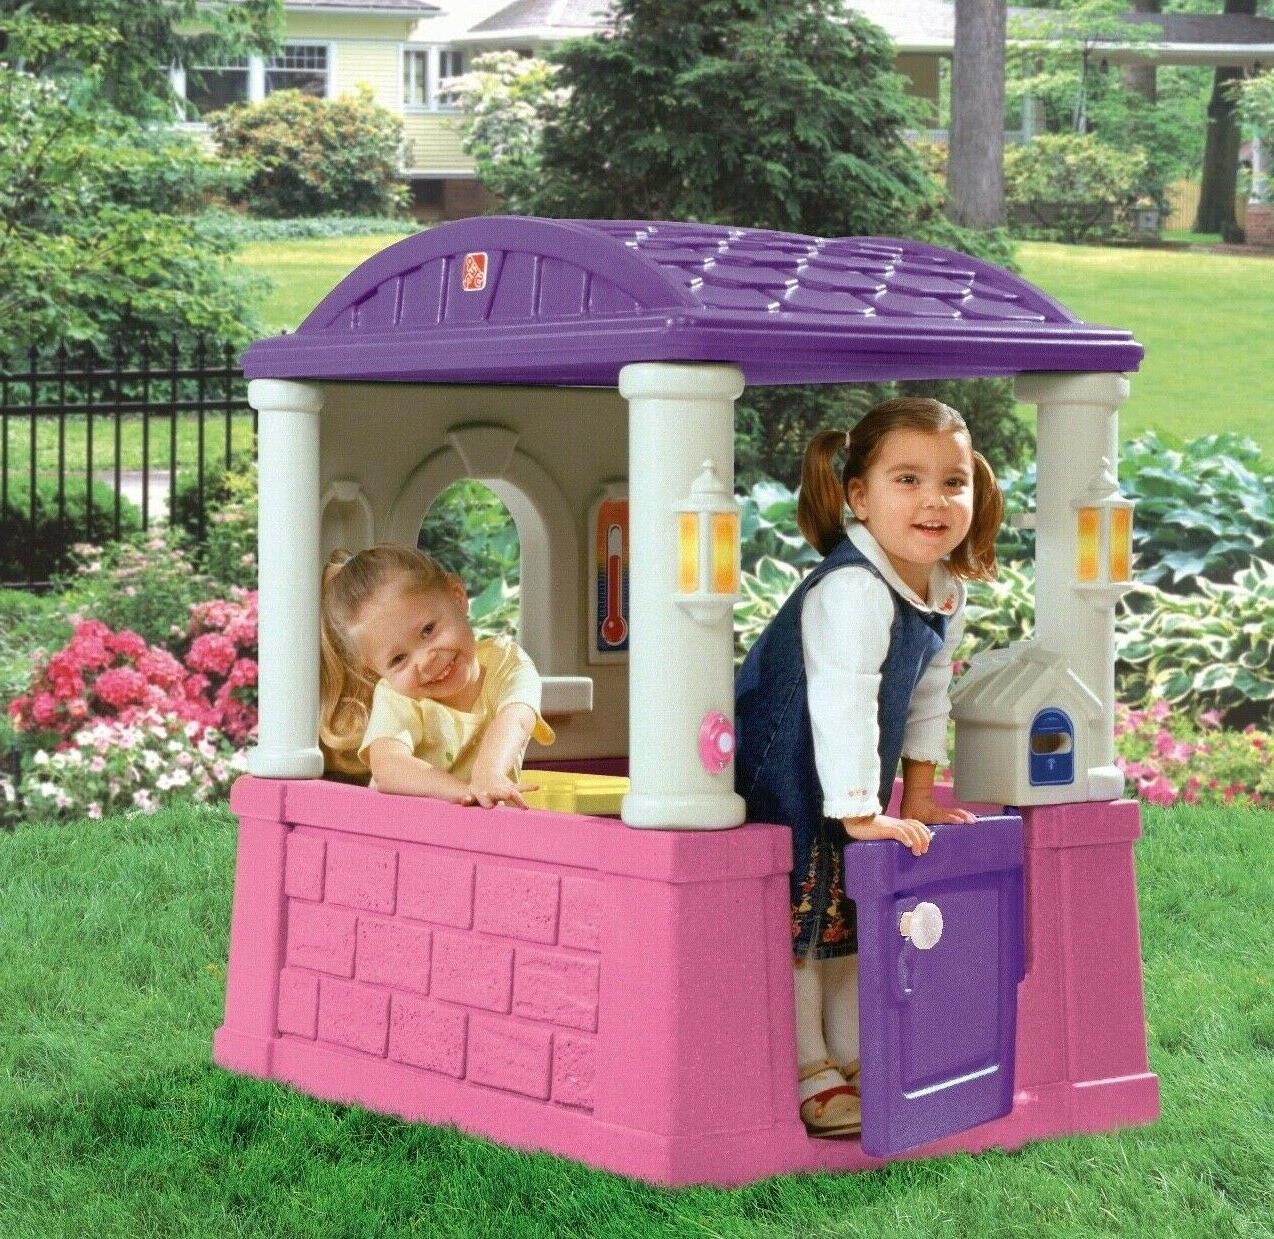 Cottage Playhouse Outdoor Play Activity Plastic Kids Girl